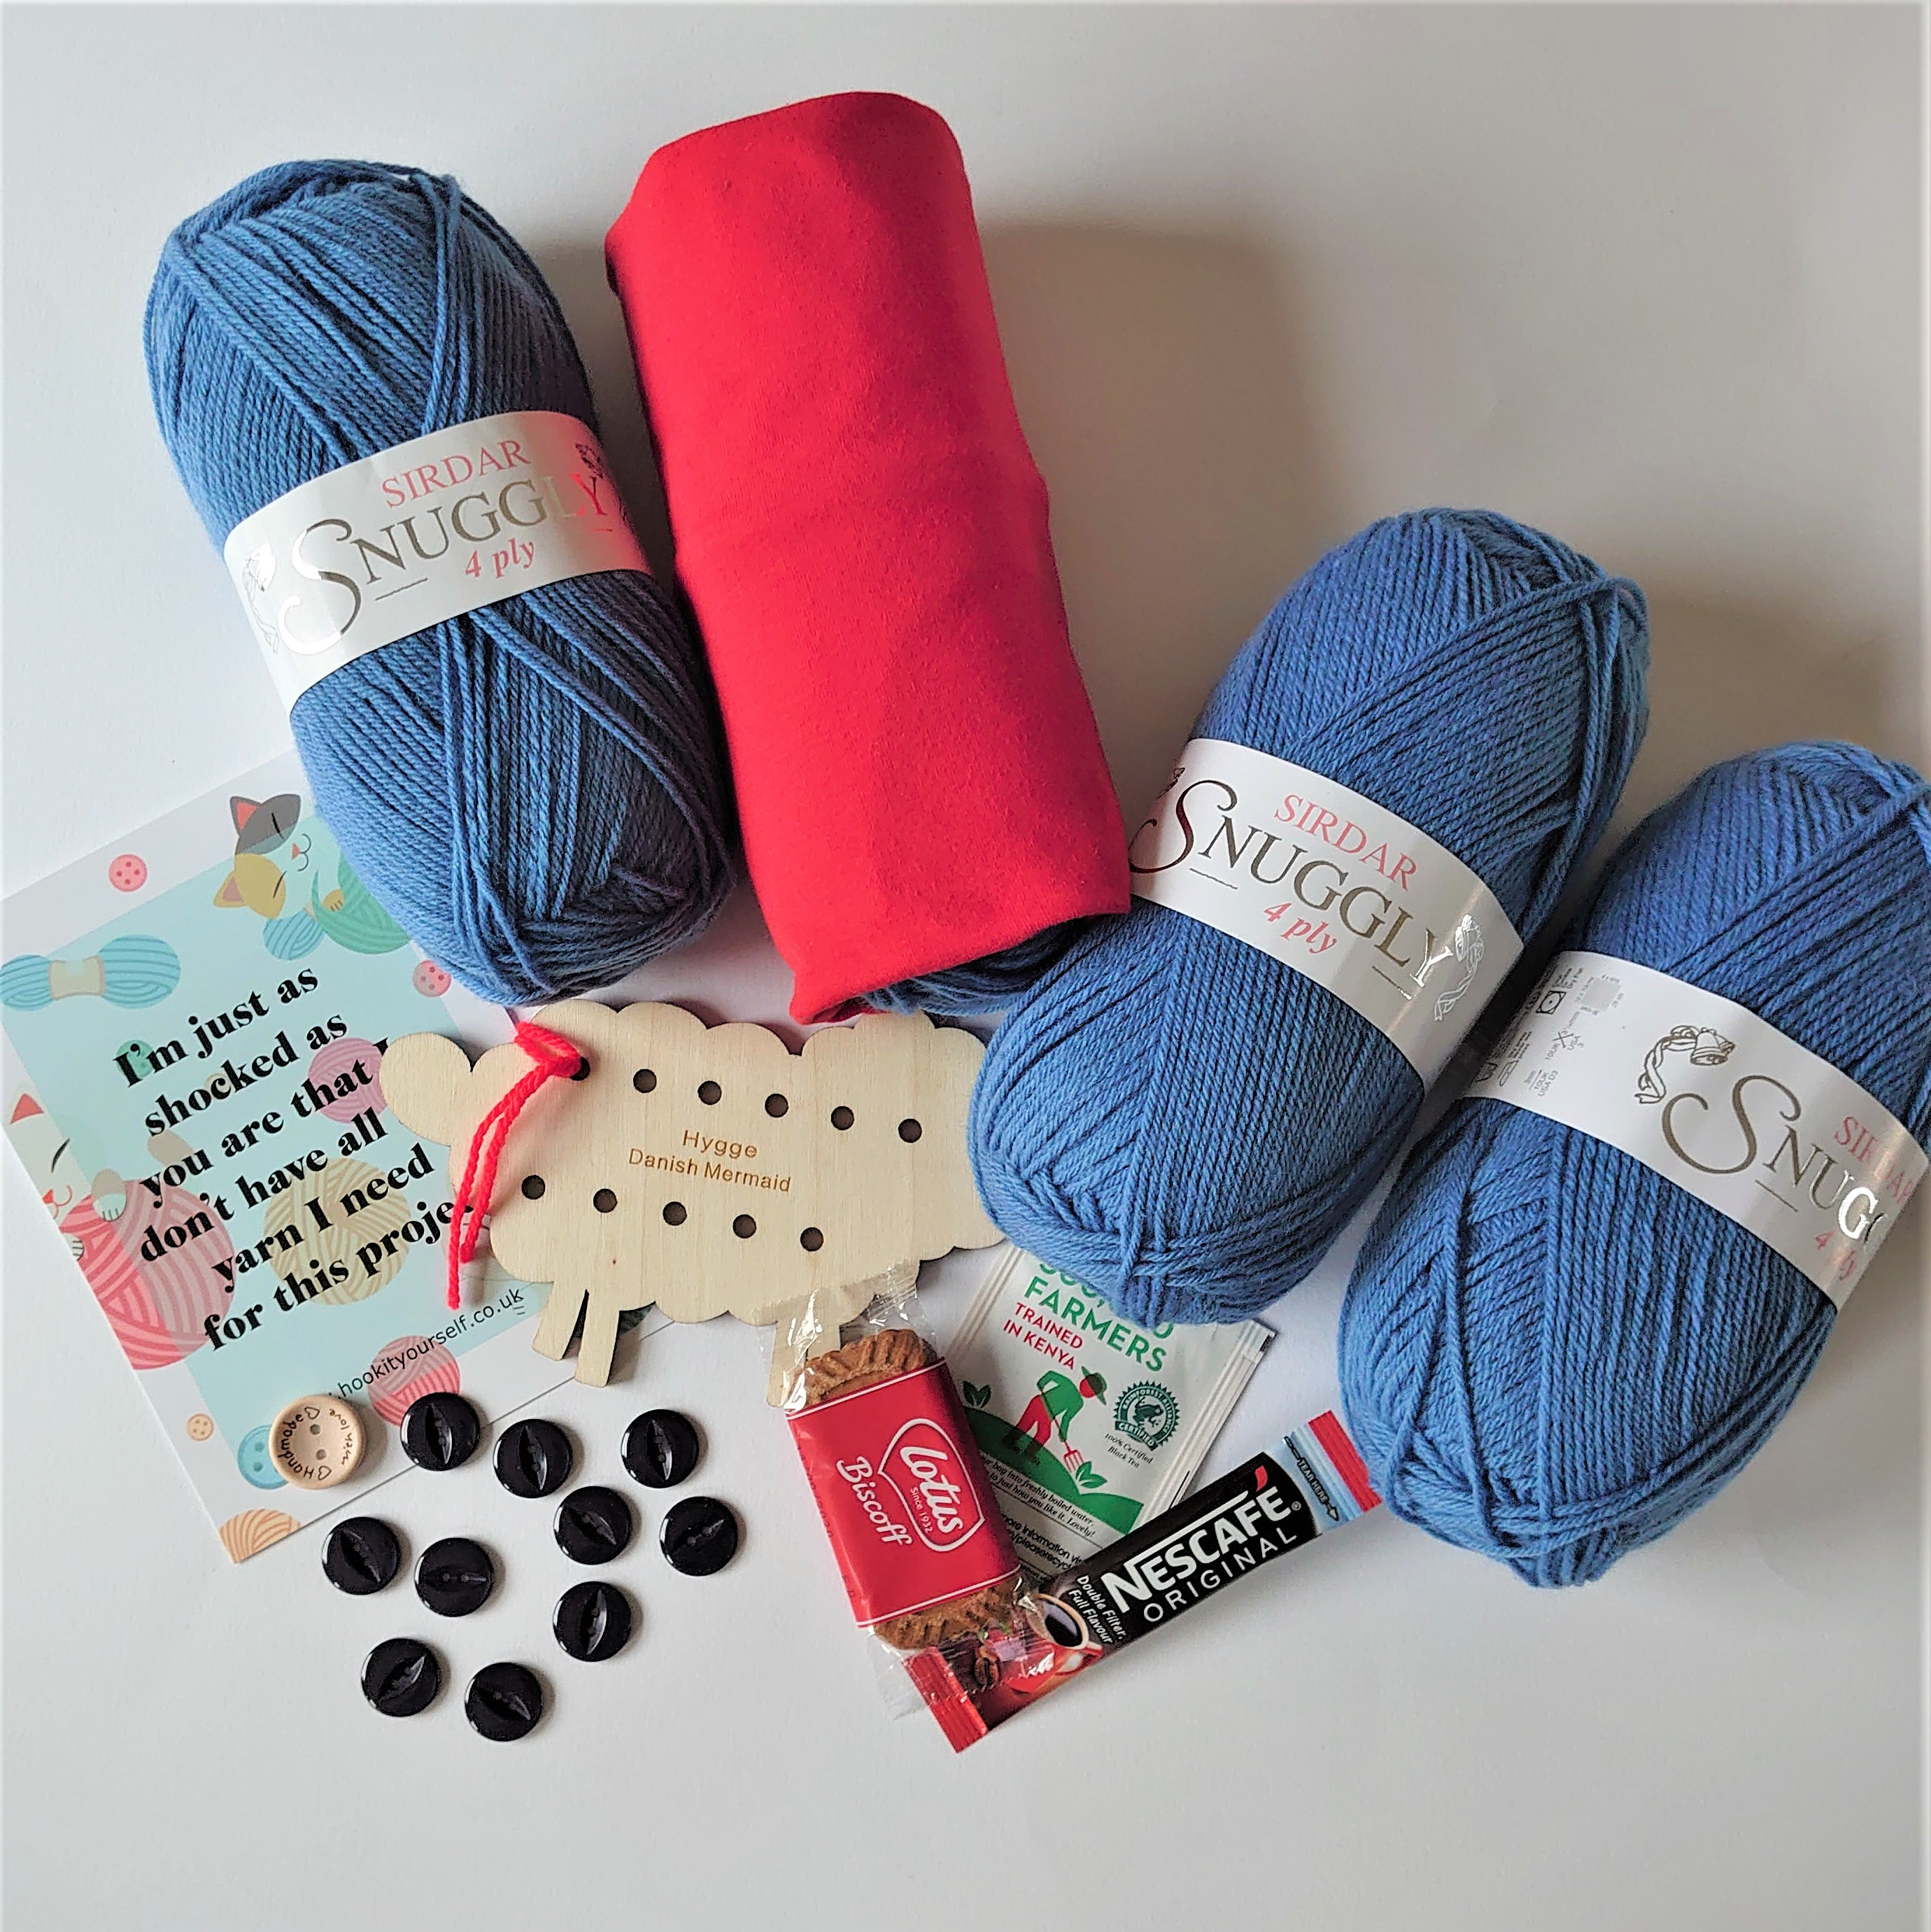 4 balls of Sirdar Snuggly 4ply in blue, with one being encased in a red yarn sock. alongside this there is a postcard which reads 'I'm just as shocked as you are that I don;t have all the I need for this project', blue buttons, tea, coffee and biscuit